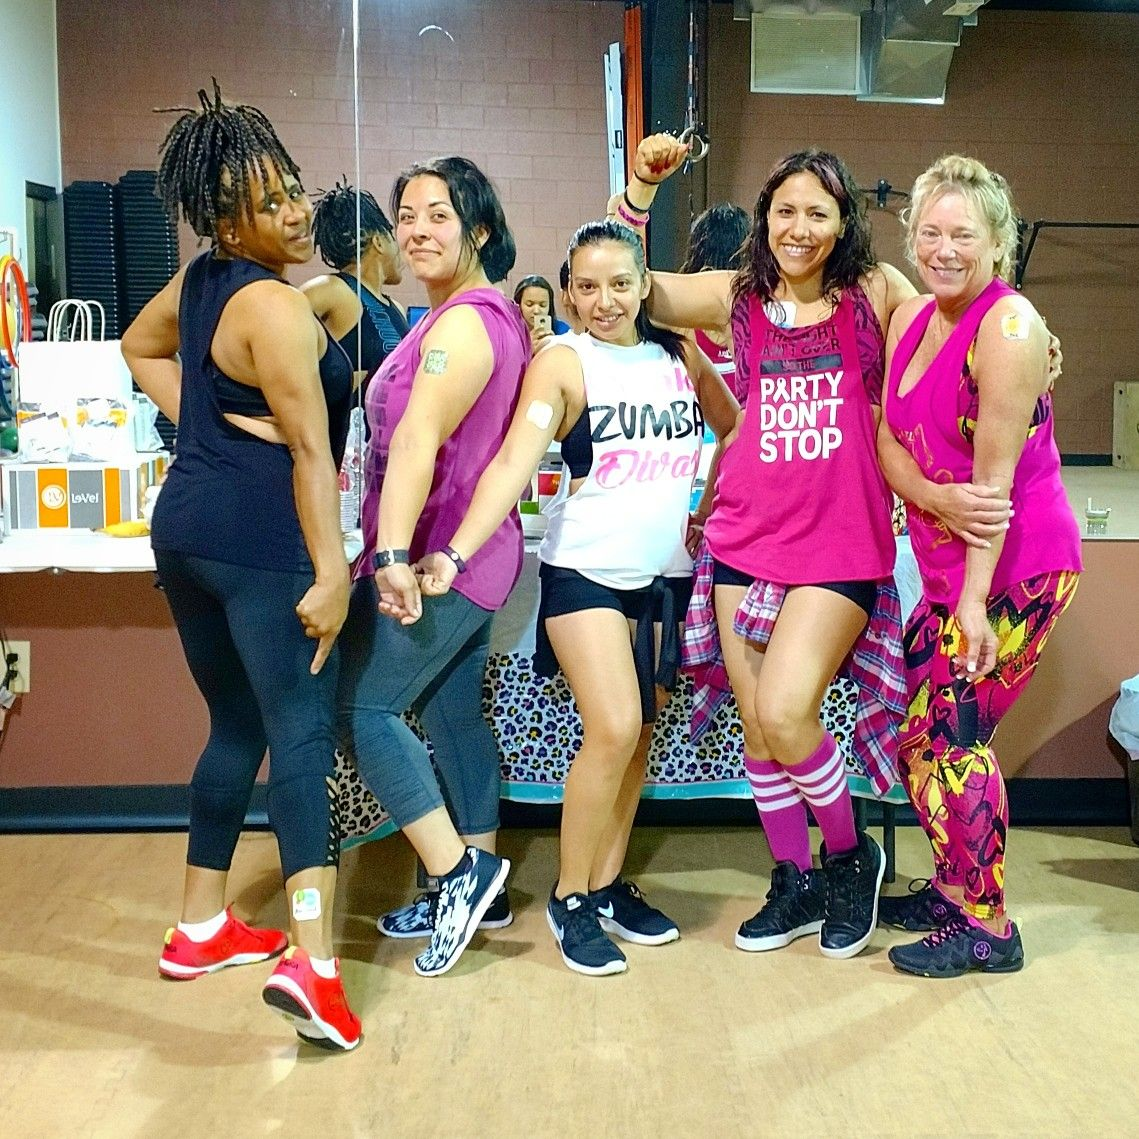 Party in Pink Zumba Outfit  Zumba outfit, Outfits, Fashion